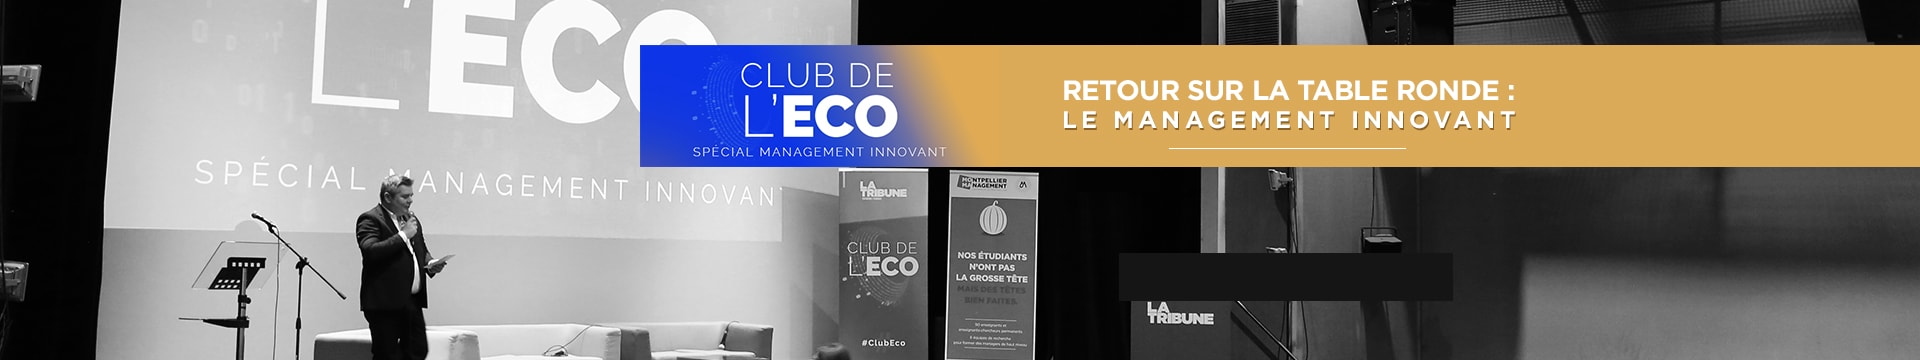 Club de l'Eco - Table ronde sur le Management Innovant - La Tribune & Montpellier Management